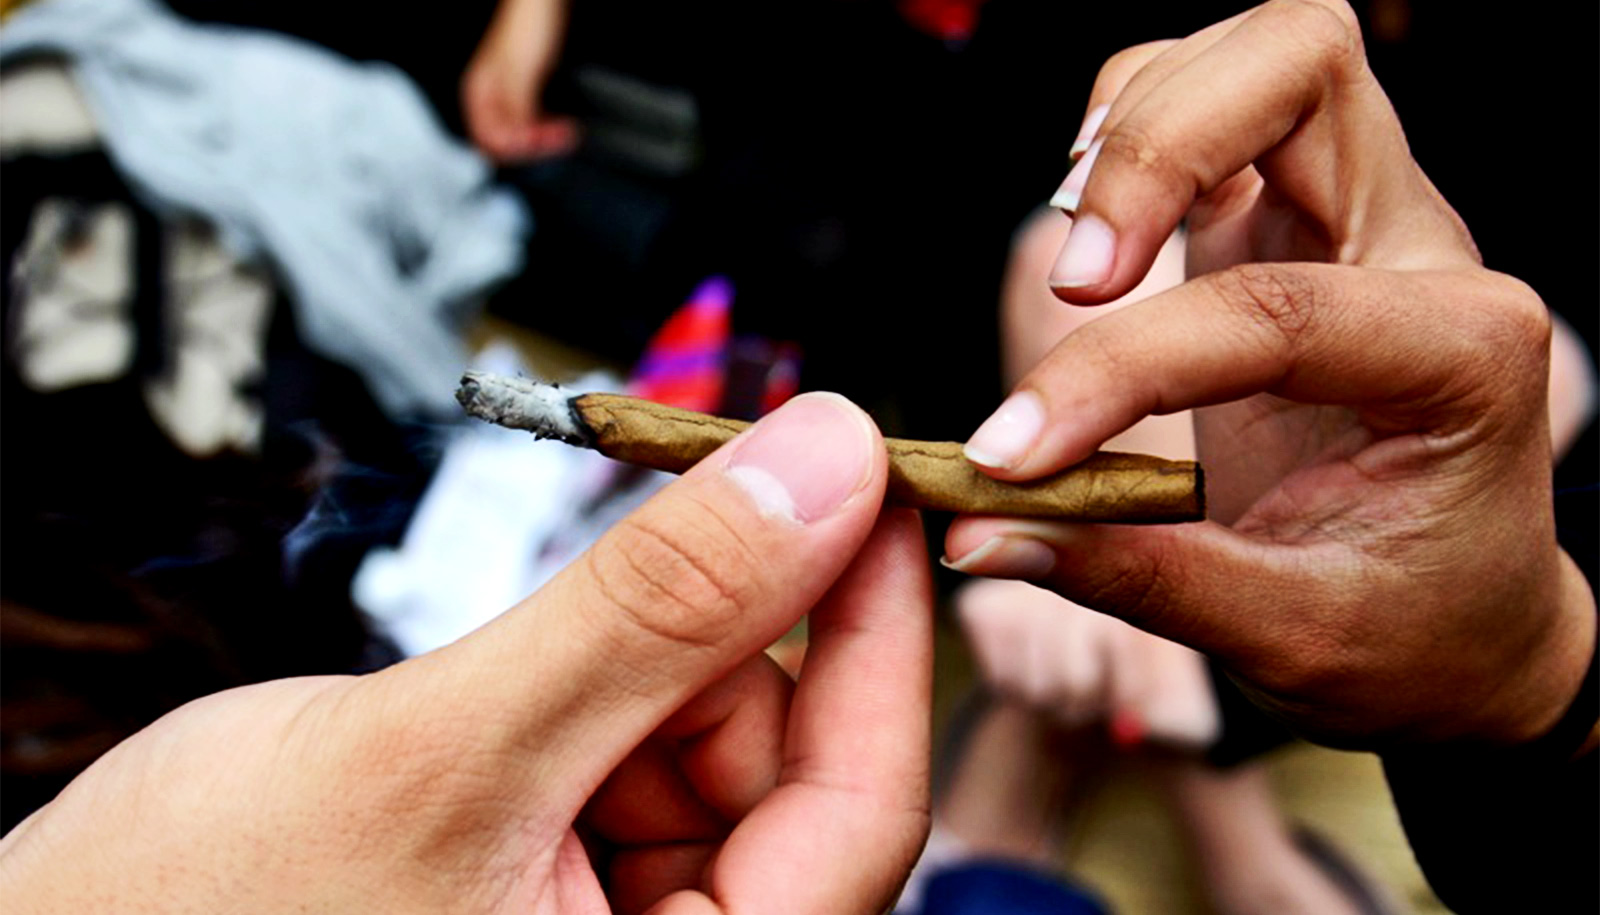 Regular weed use has harmful effects whenever people start - Futurity